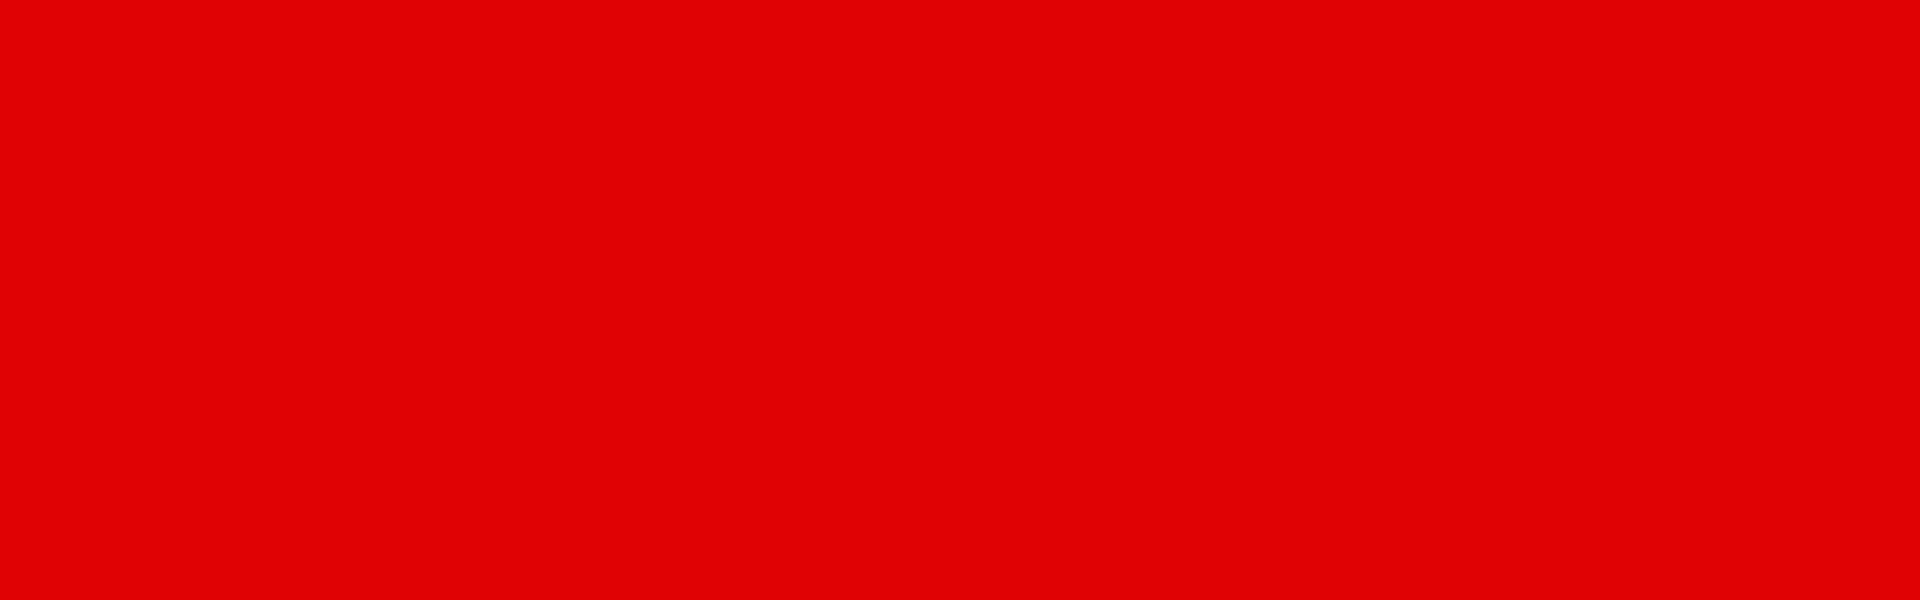 Red-Background